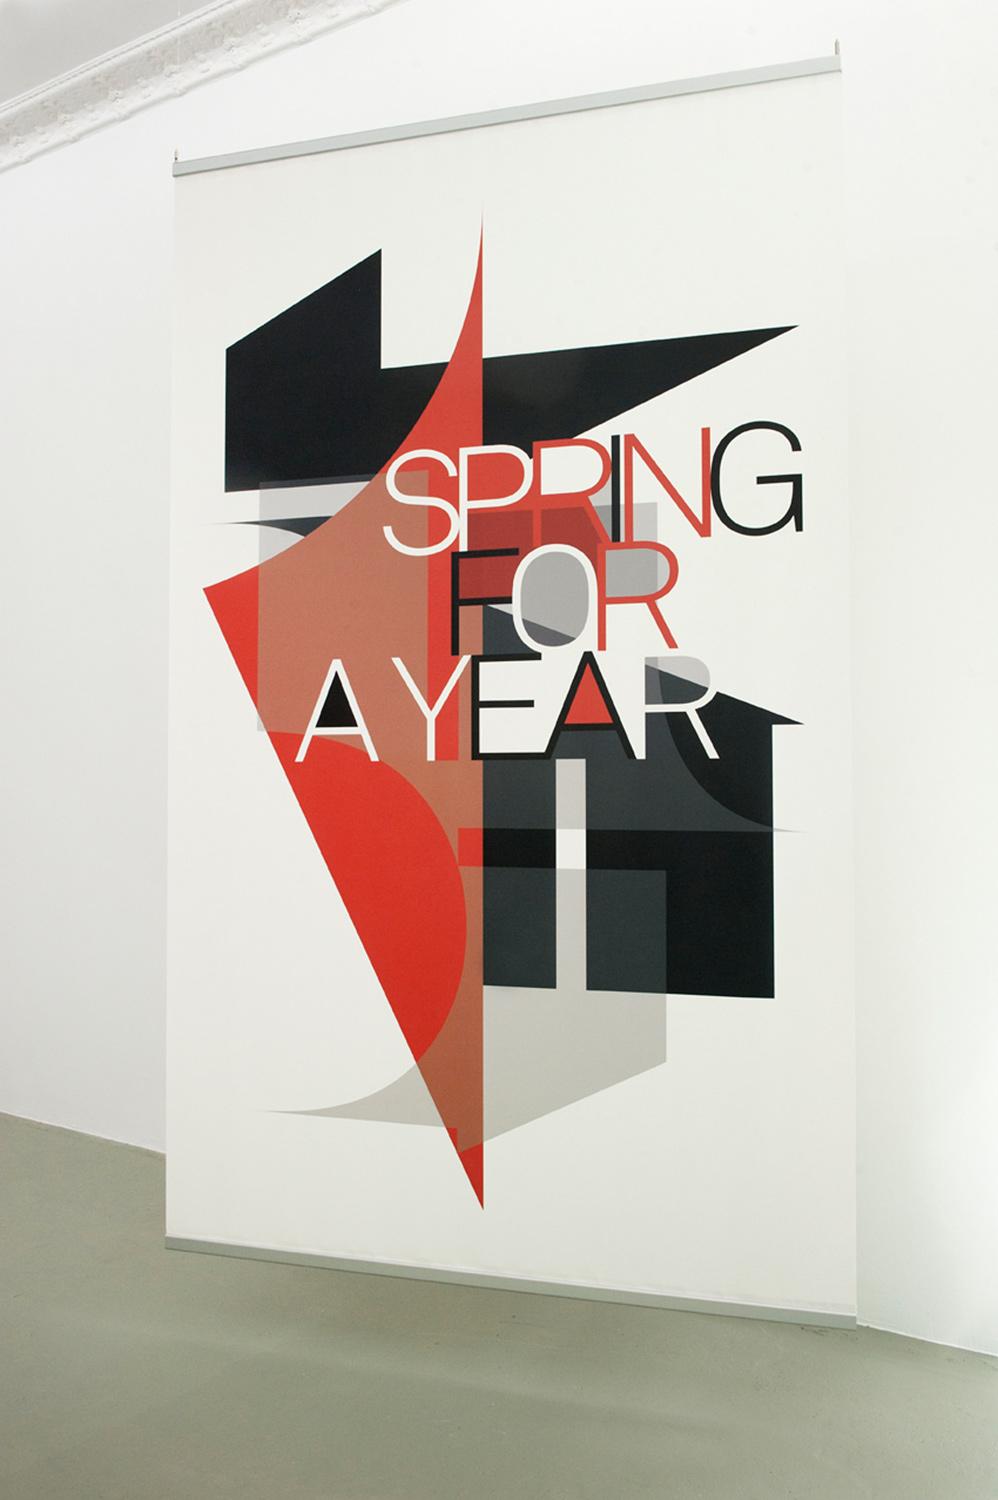 Spring for a Year